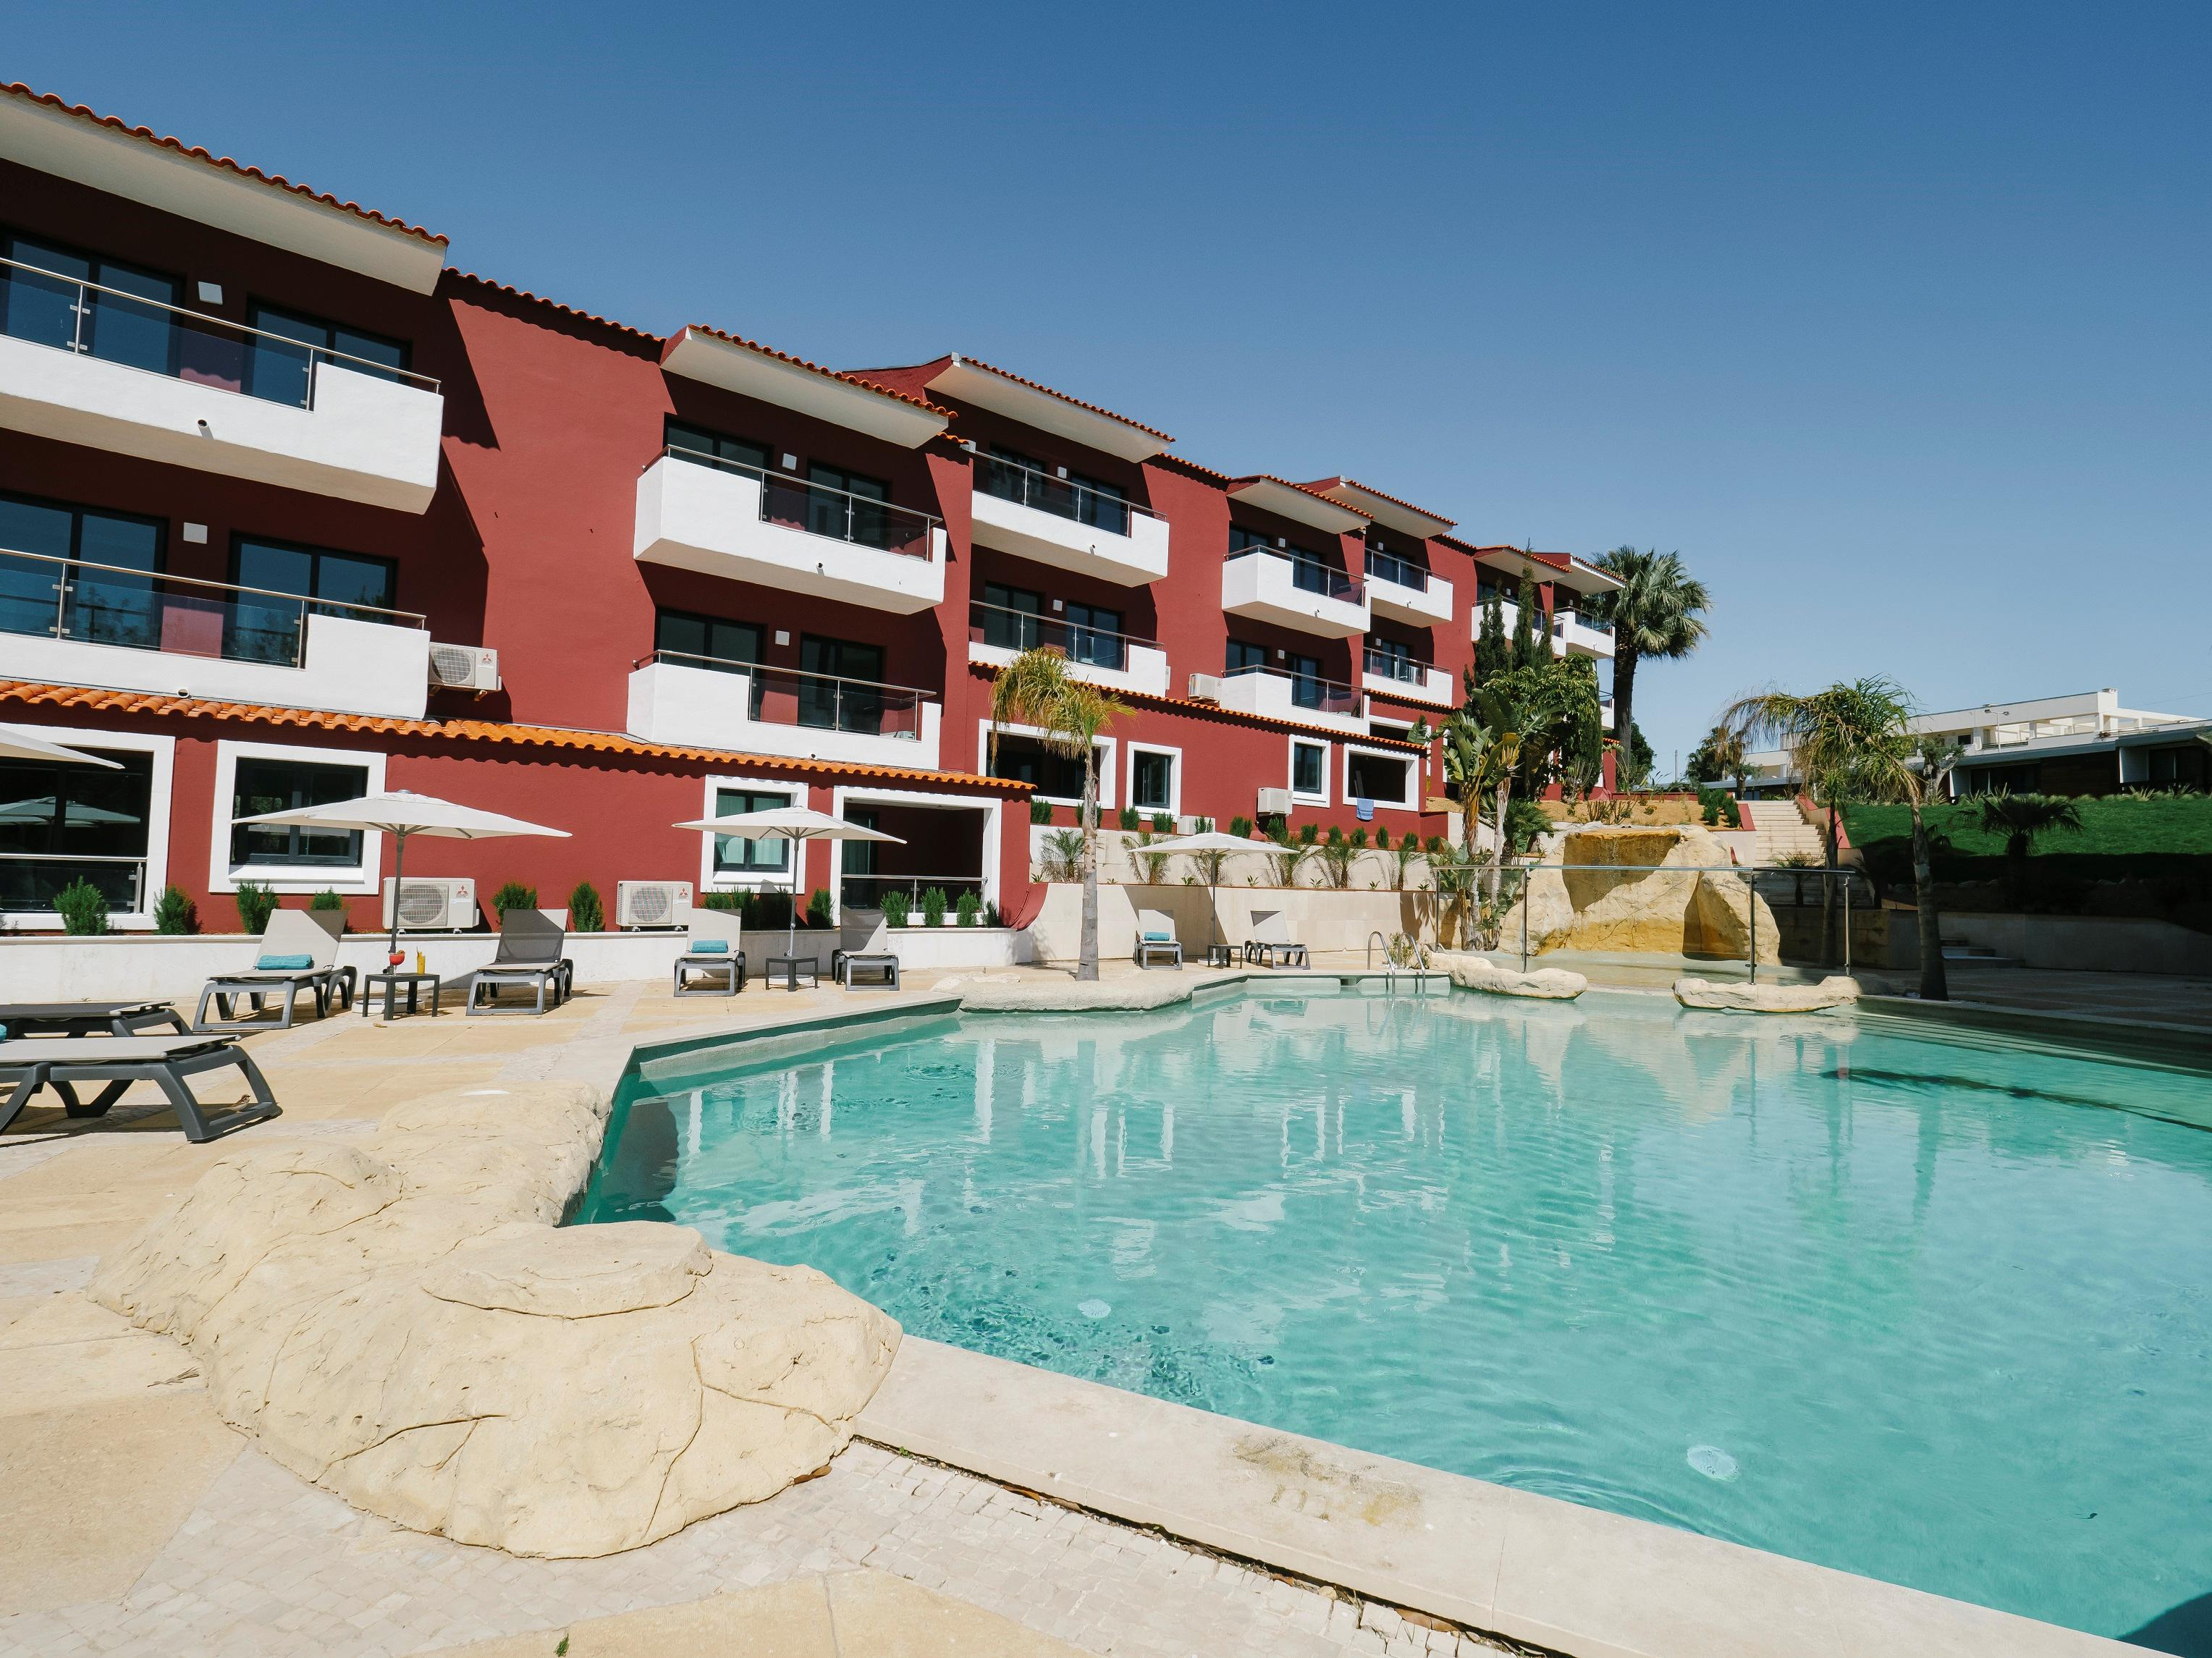 Apparthotel Topazio Mar Beach - Appartements Algarve